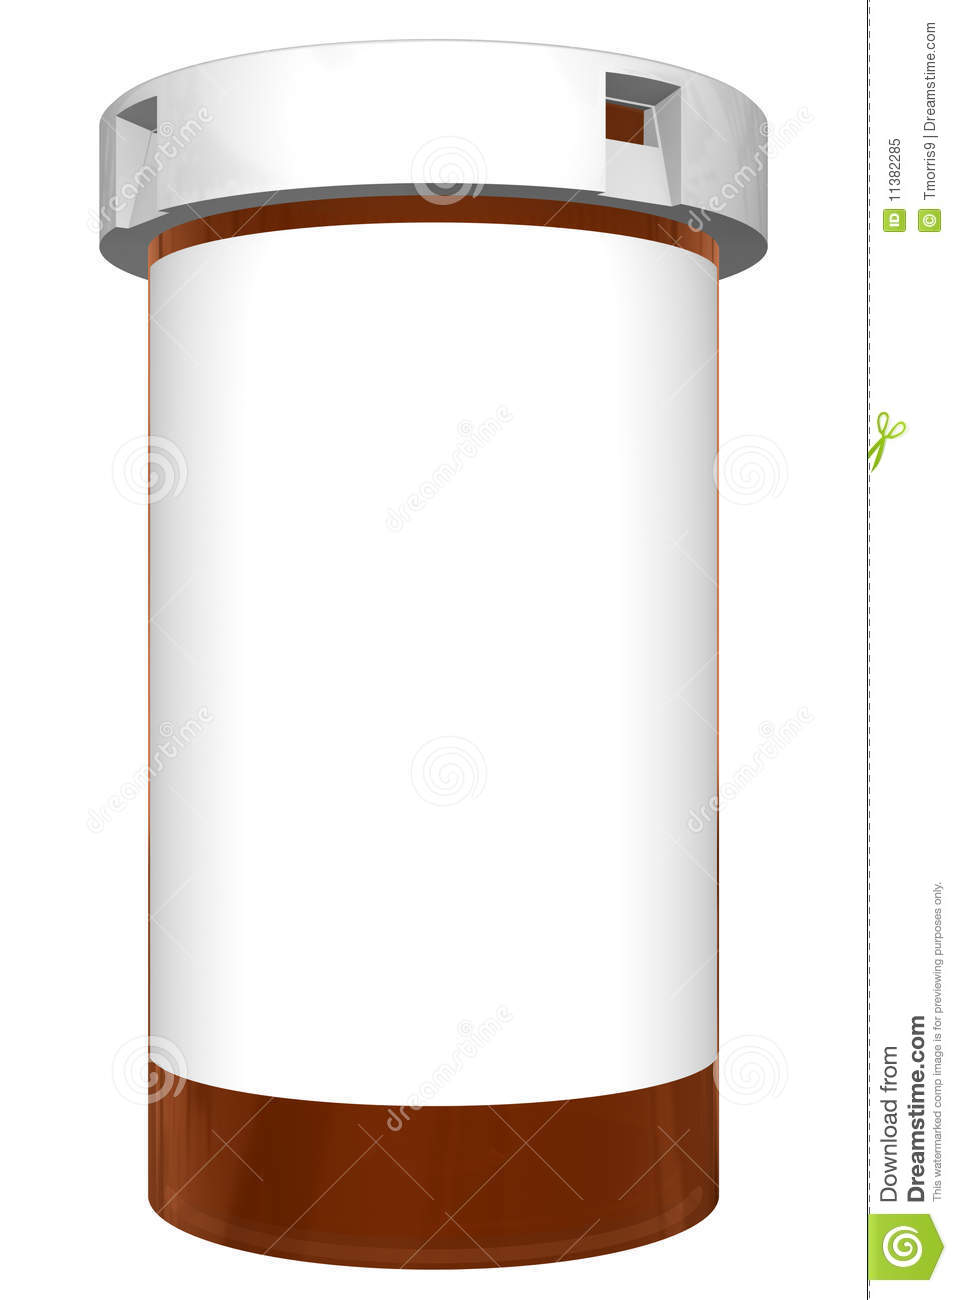 prescription bottle stock illustration illustration of computer rh dreamstime com pill bottle label maker online pill bottle label maker online